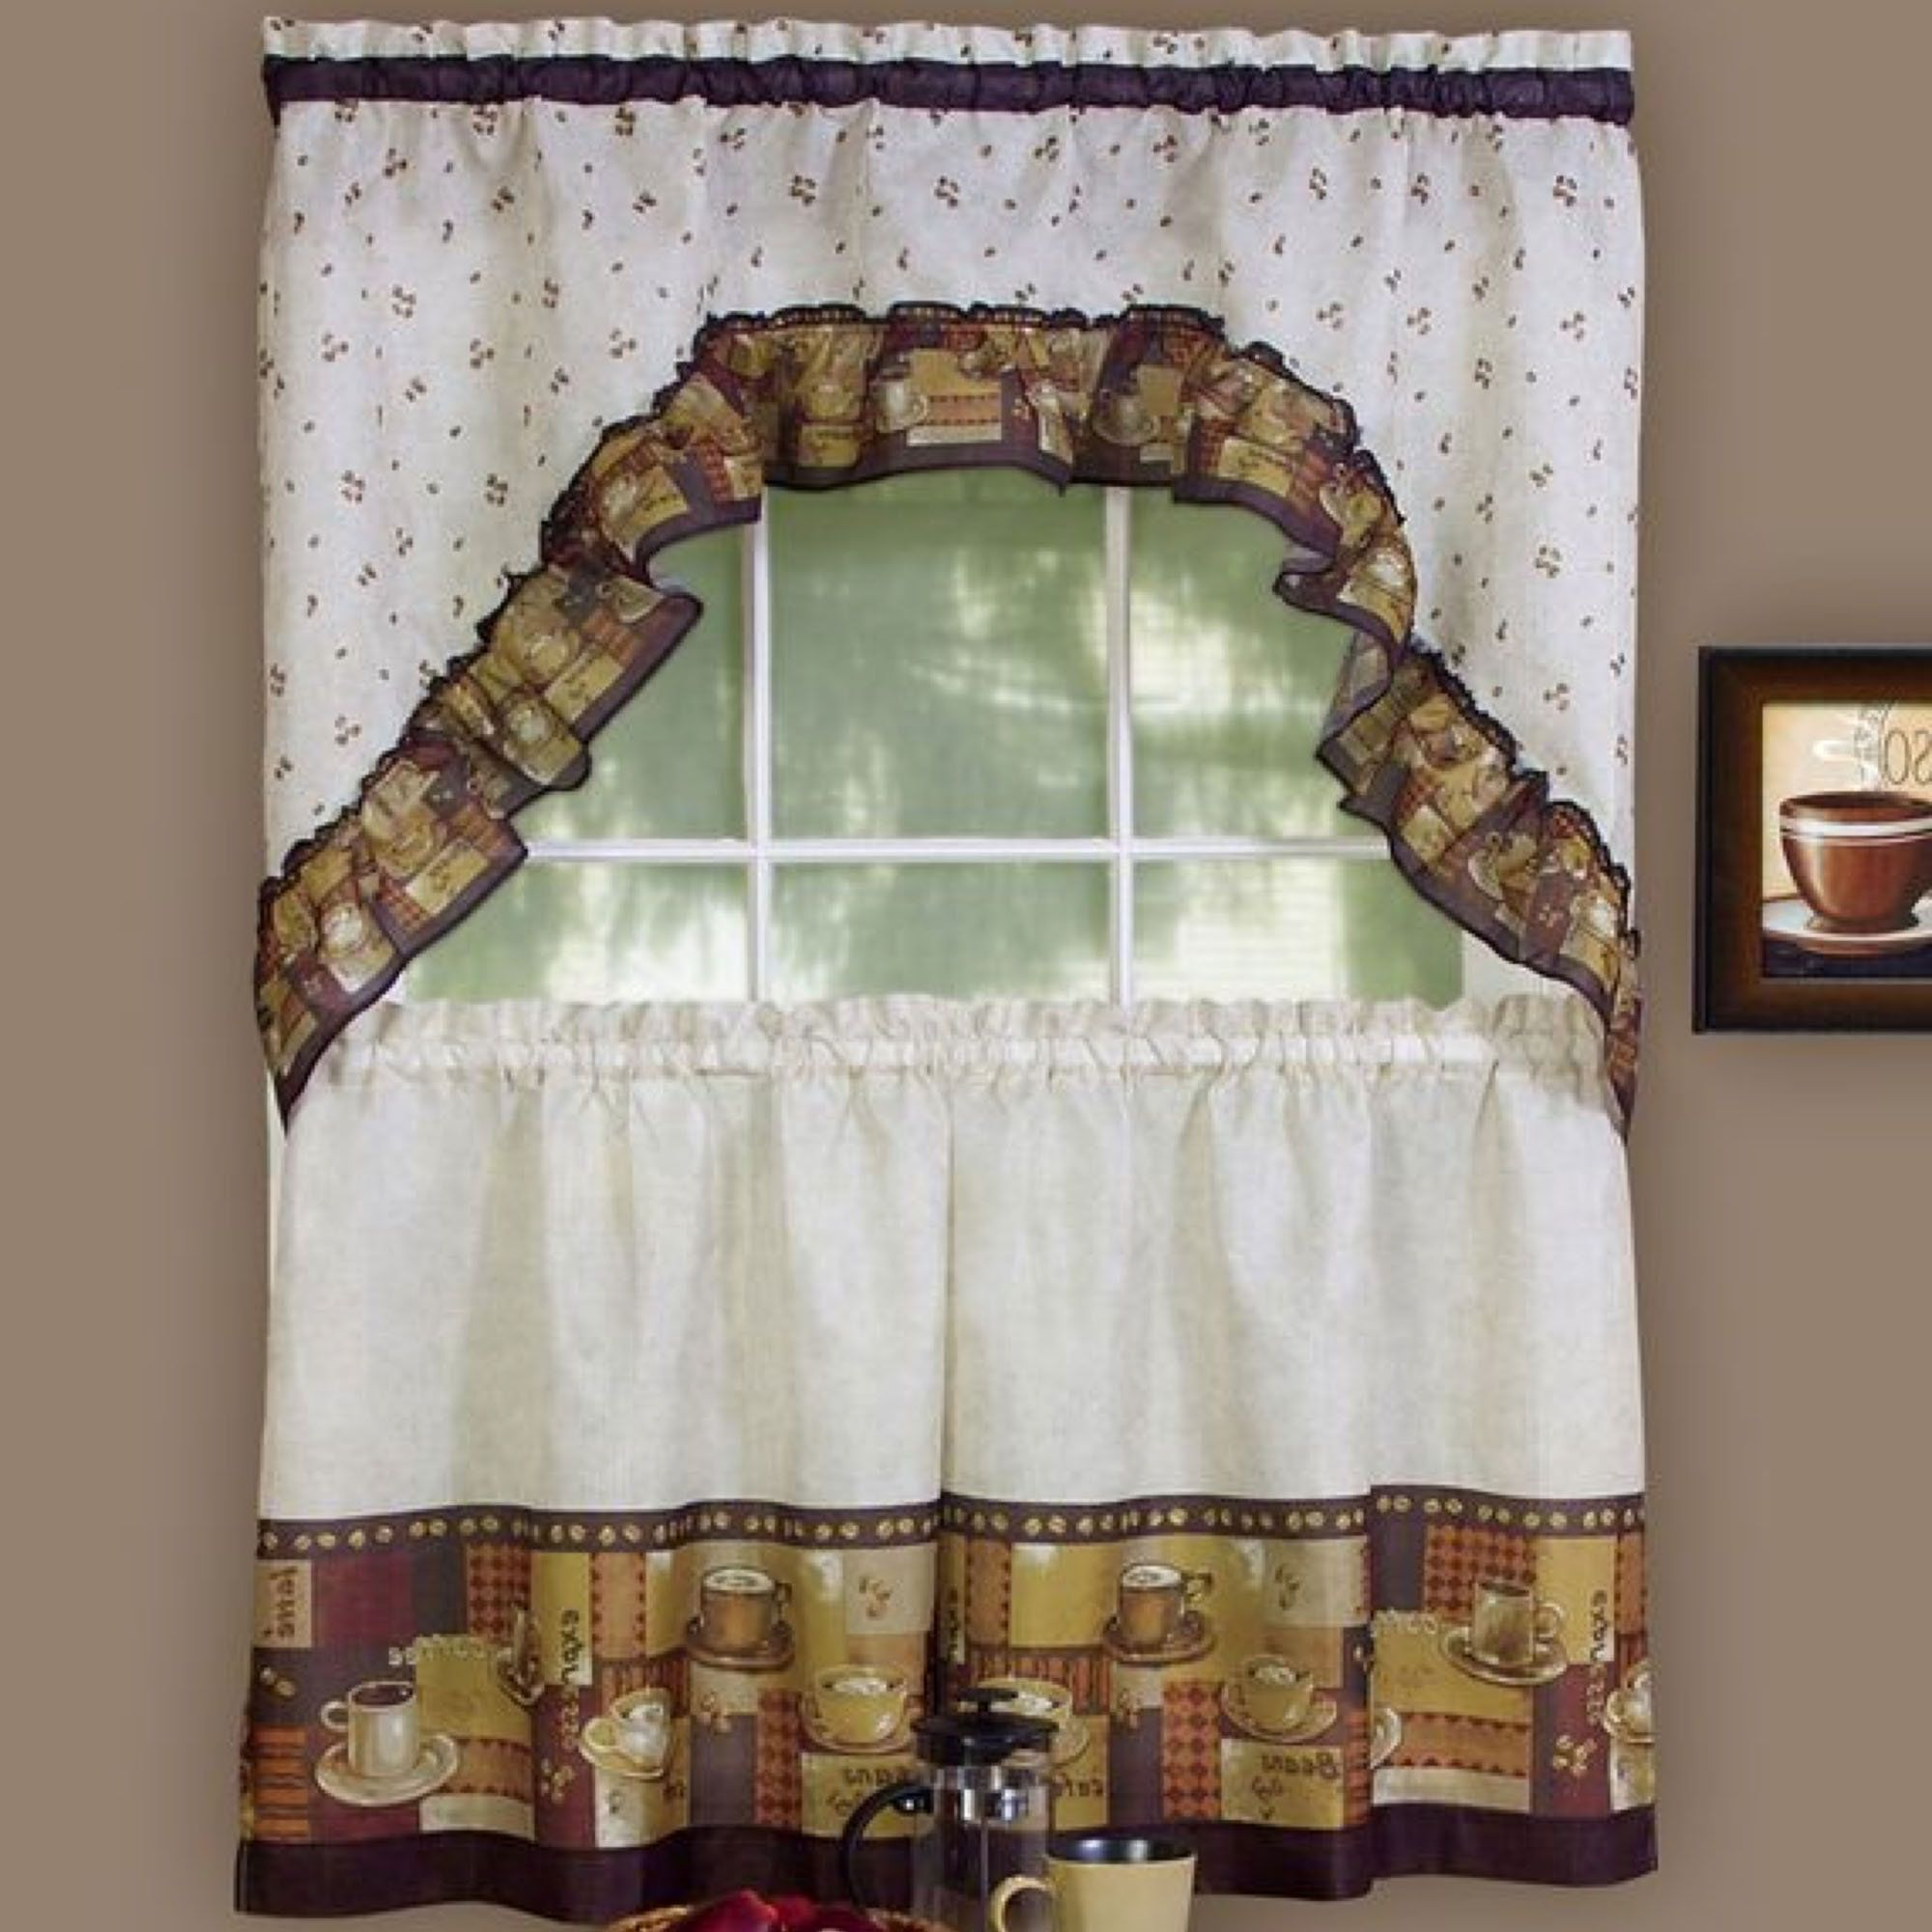 Kitchen Nice Coffee Themed Kitchen Decor Curtains Simple Curtain With Coffee Theme With Images Kitchen Decor Themes Coffee Kitchen Curtain Sets Kitchen Window Curtains